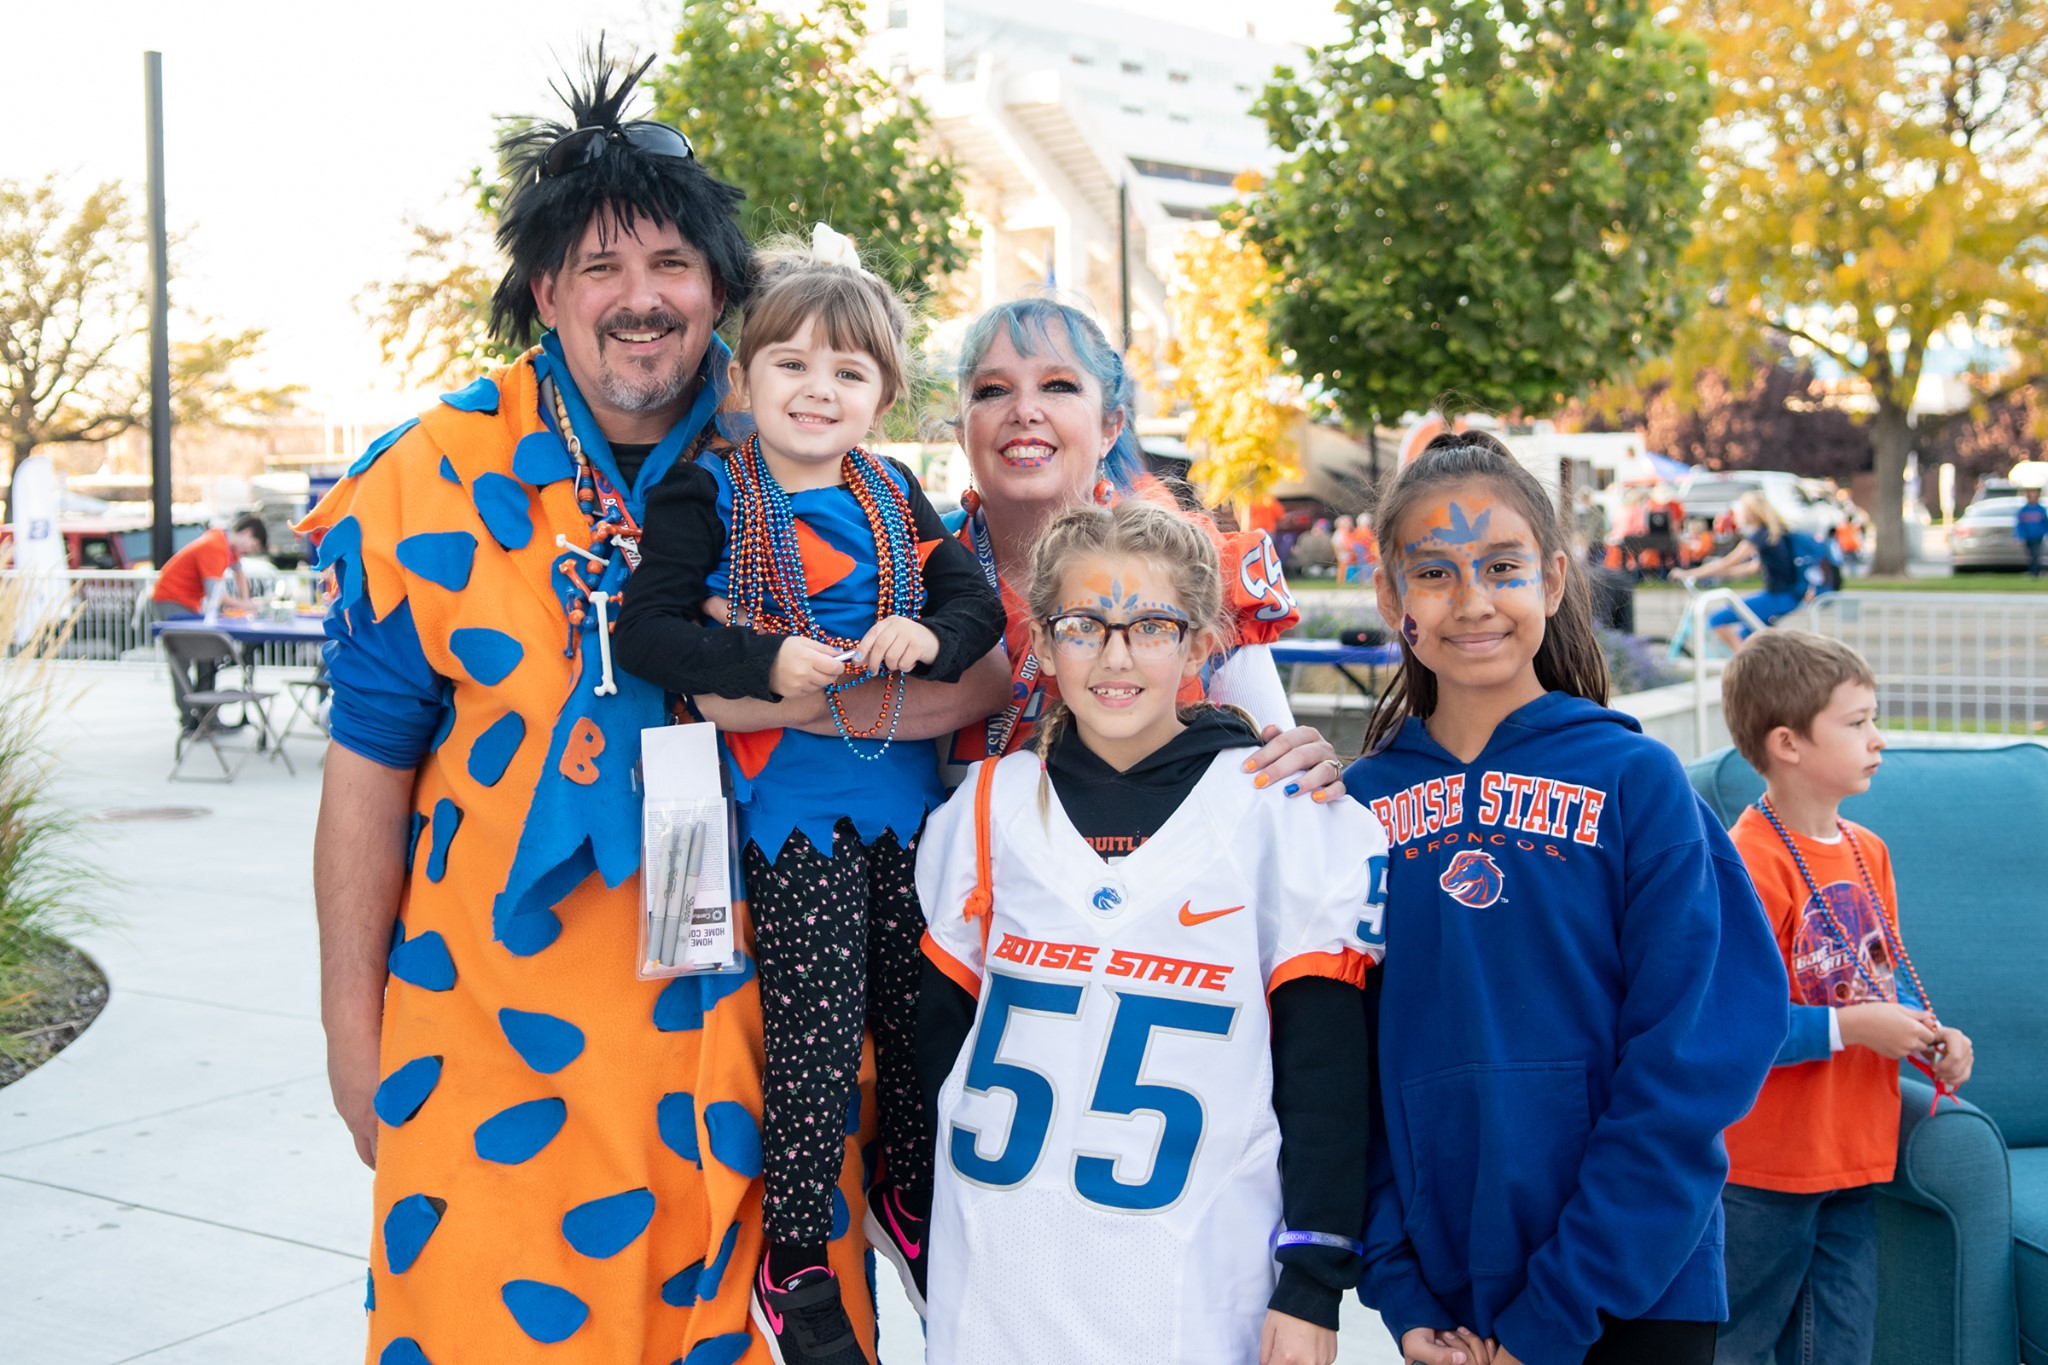 Boise State family